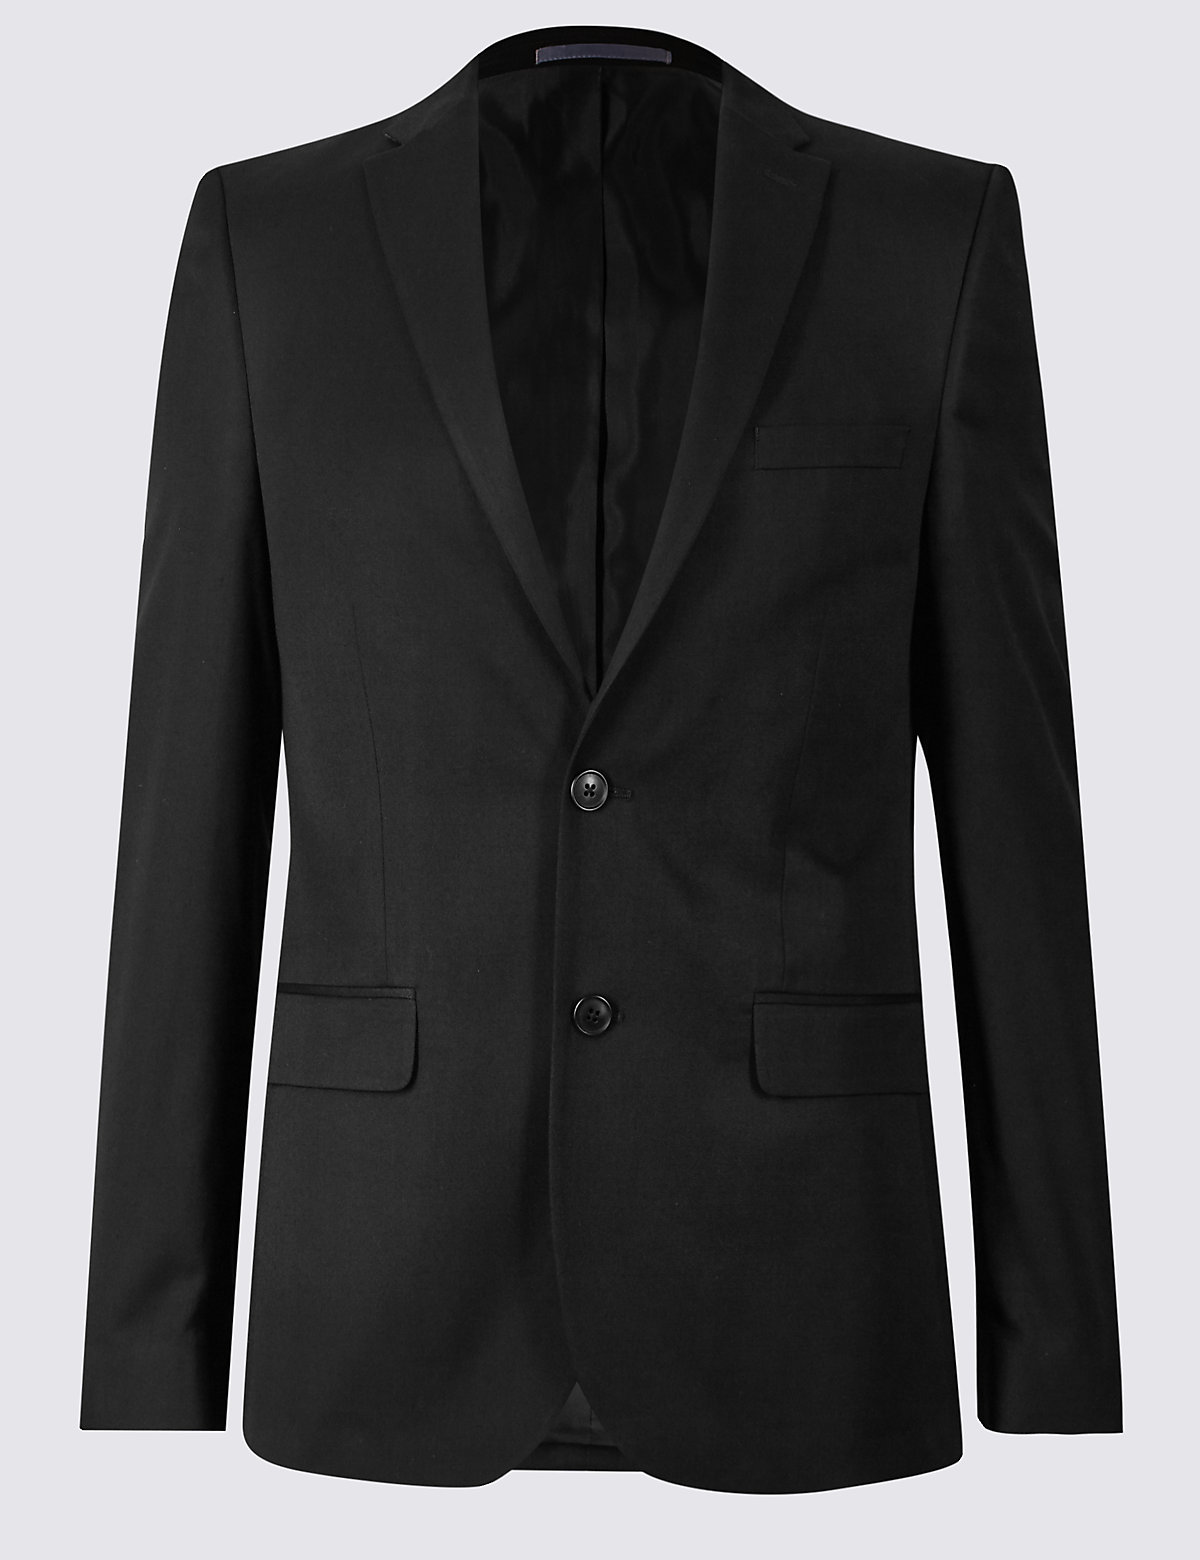 Marks & Spencer Black Modern Slim Fit Jacket